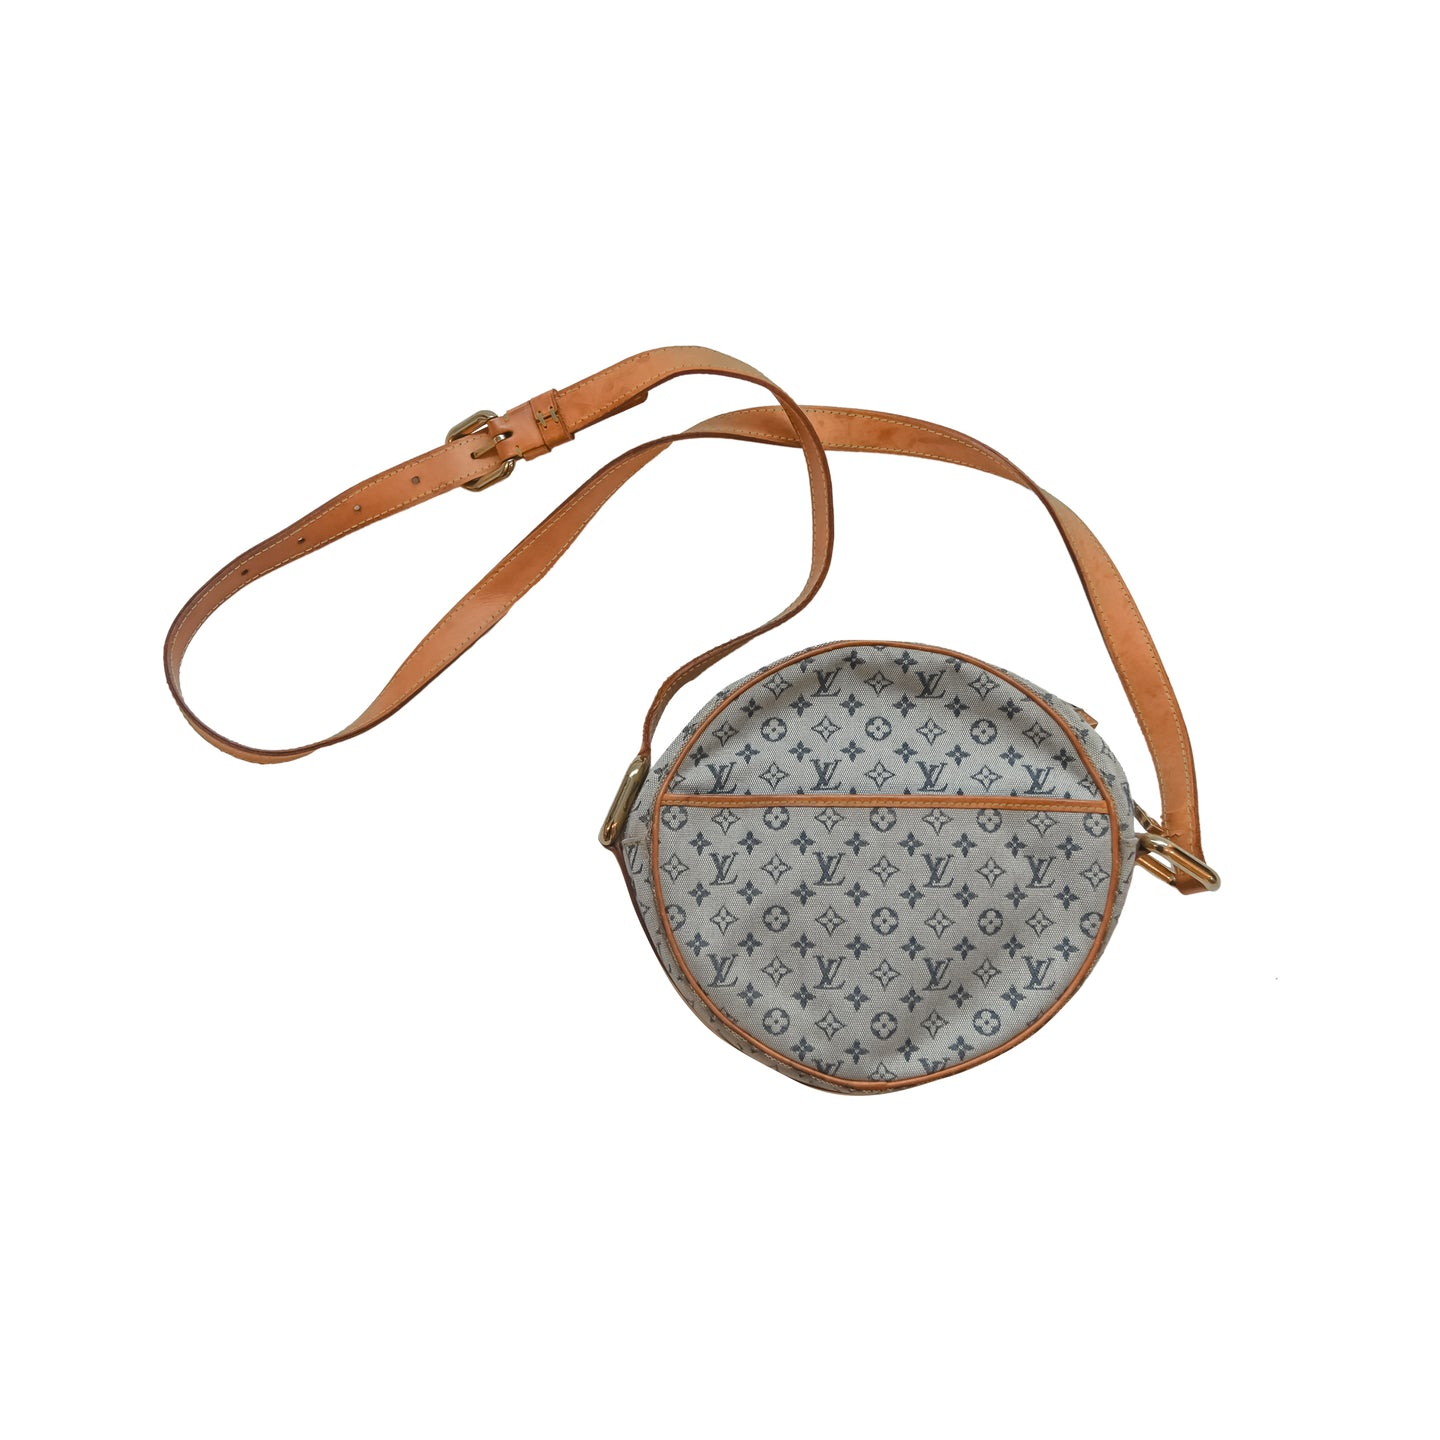 Louis Vuitton Round Canvas Bag